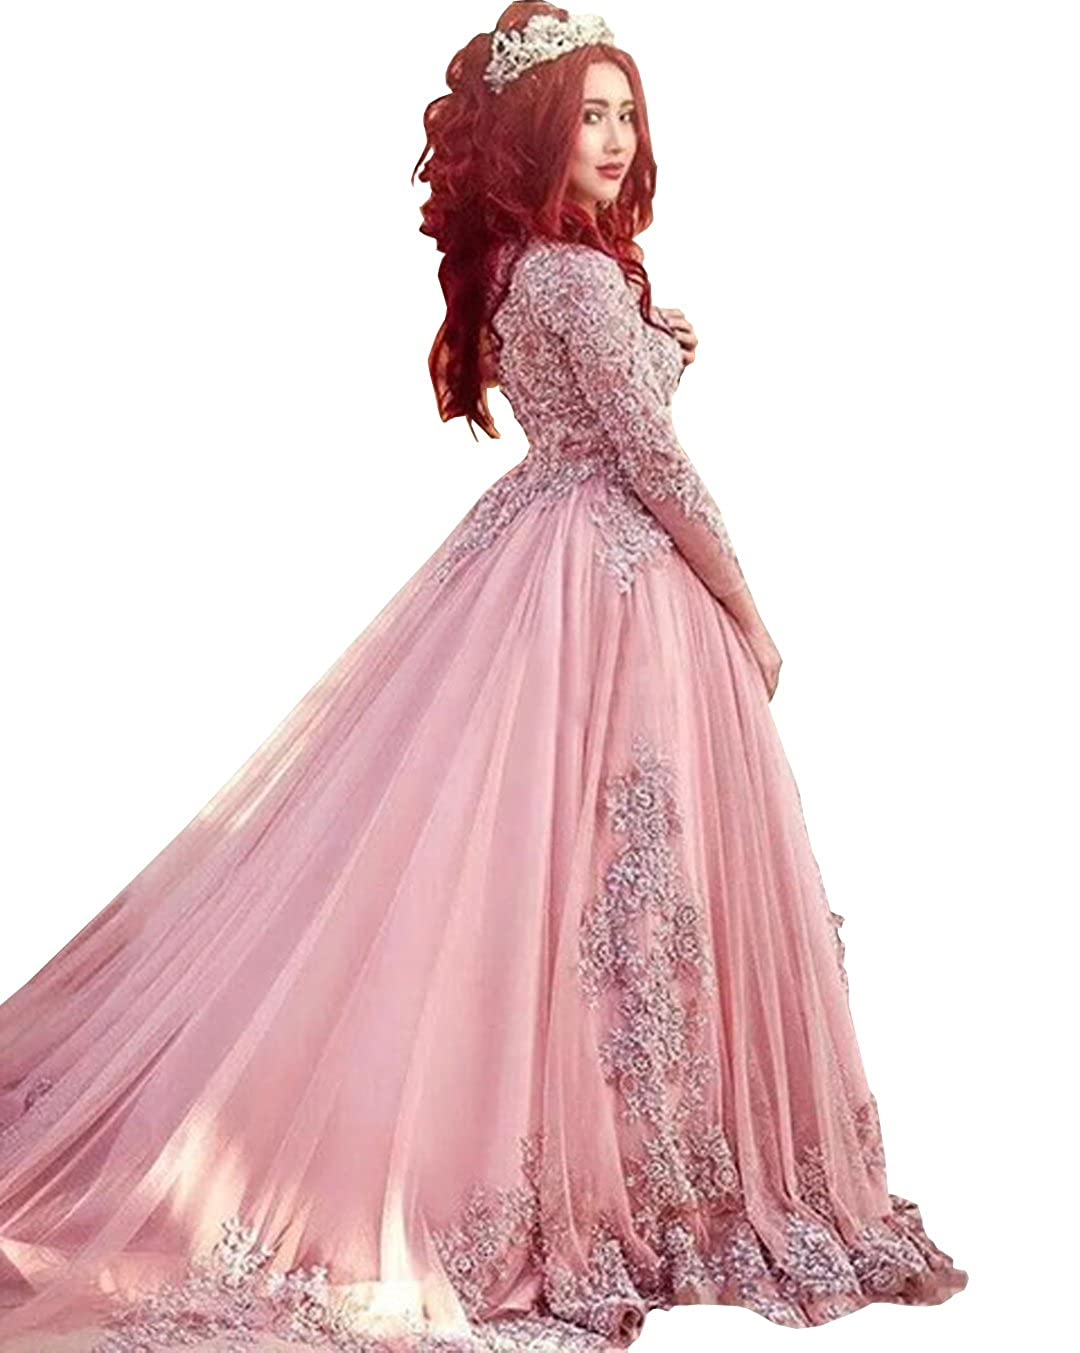 Wdress 2018 Ball Gown Long Sleeves Evening Dresses Princess Muslim Prom  Dresses at Amazon Women s Clothing store